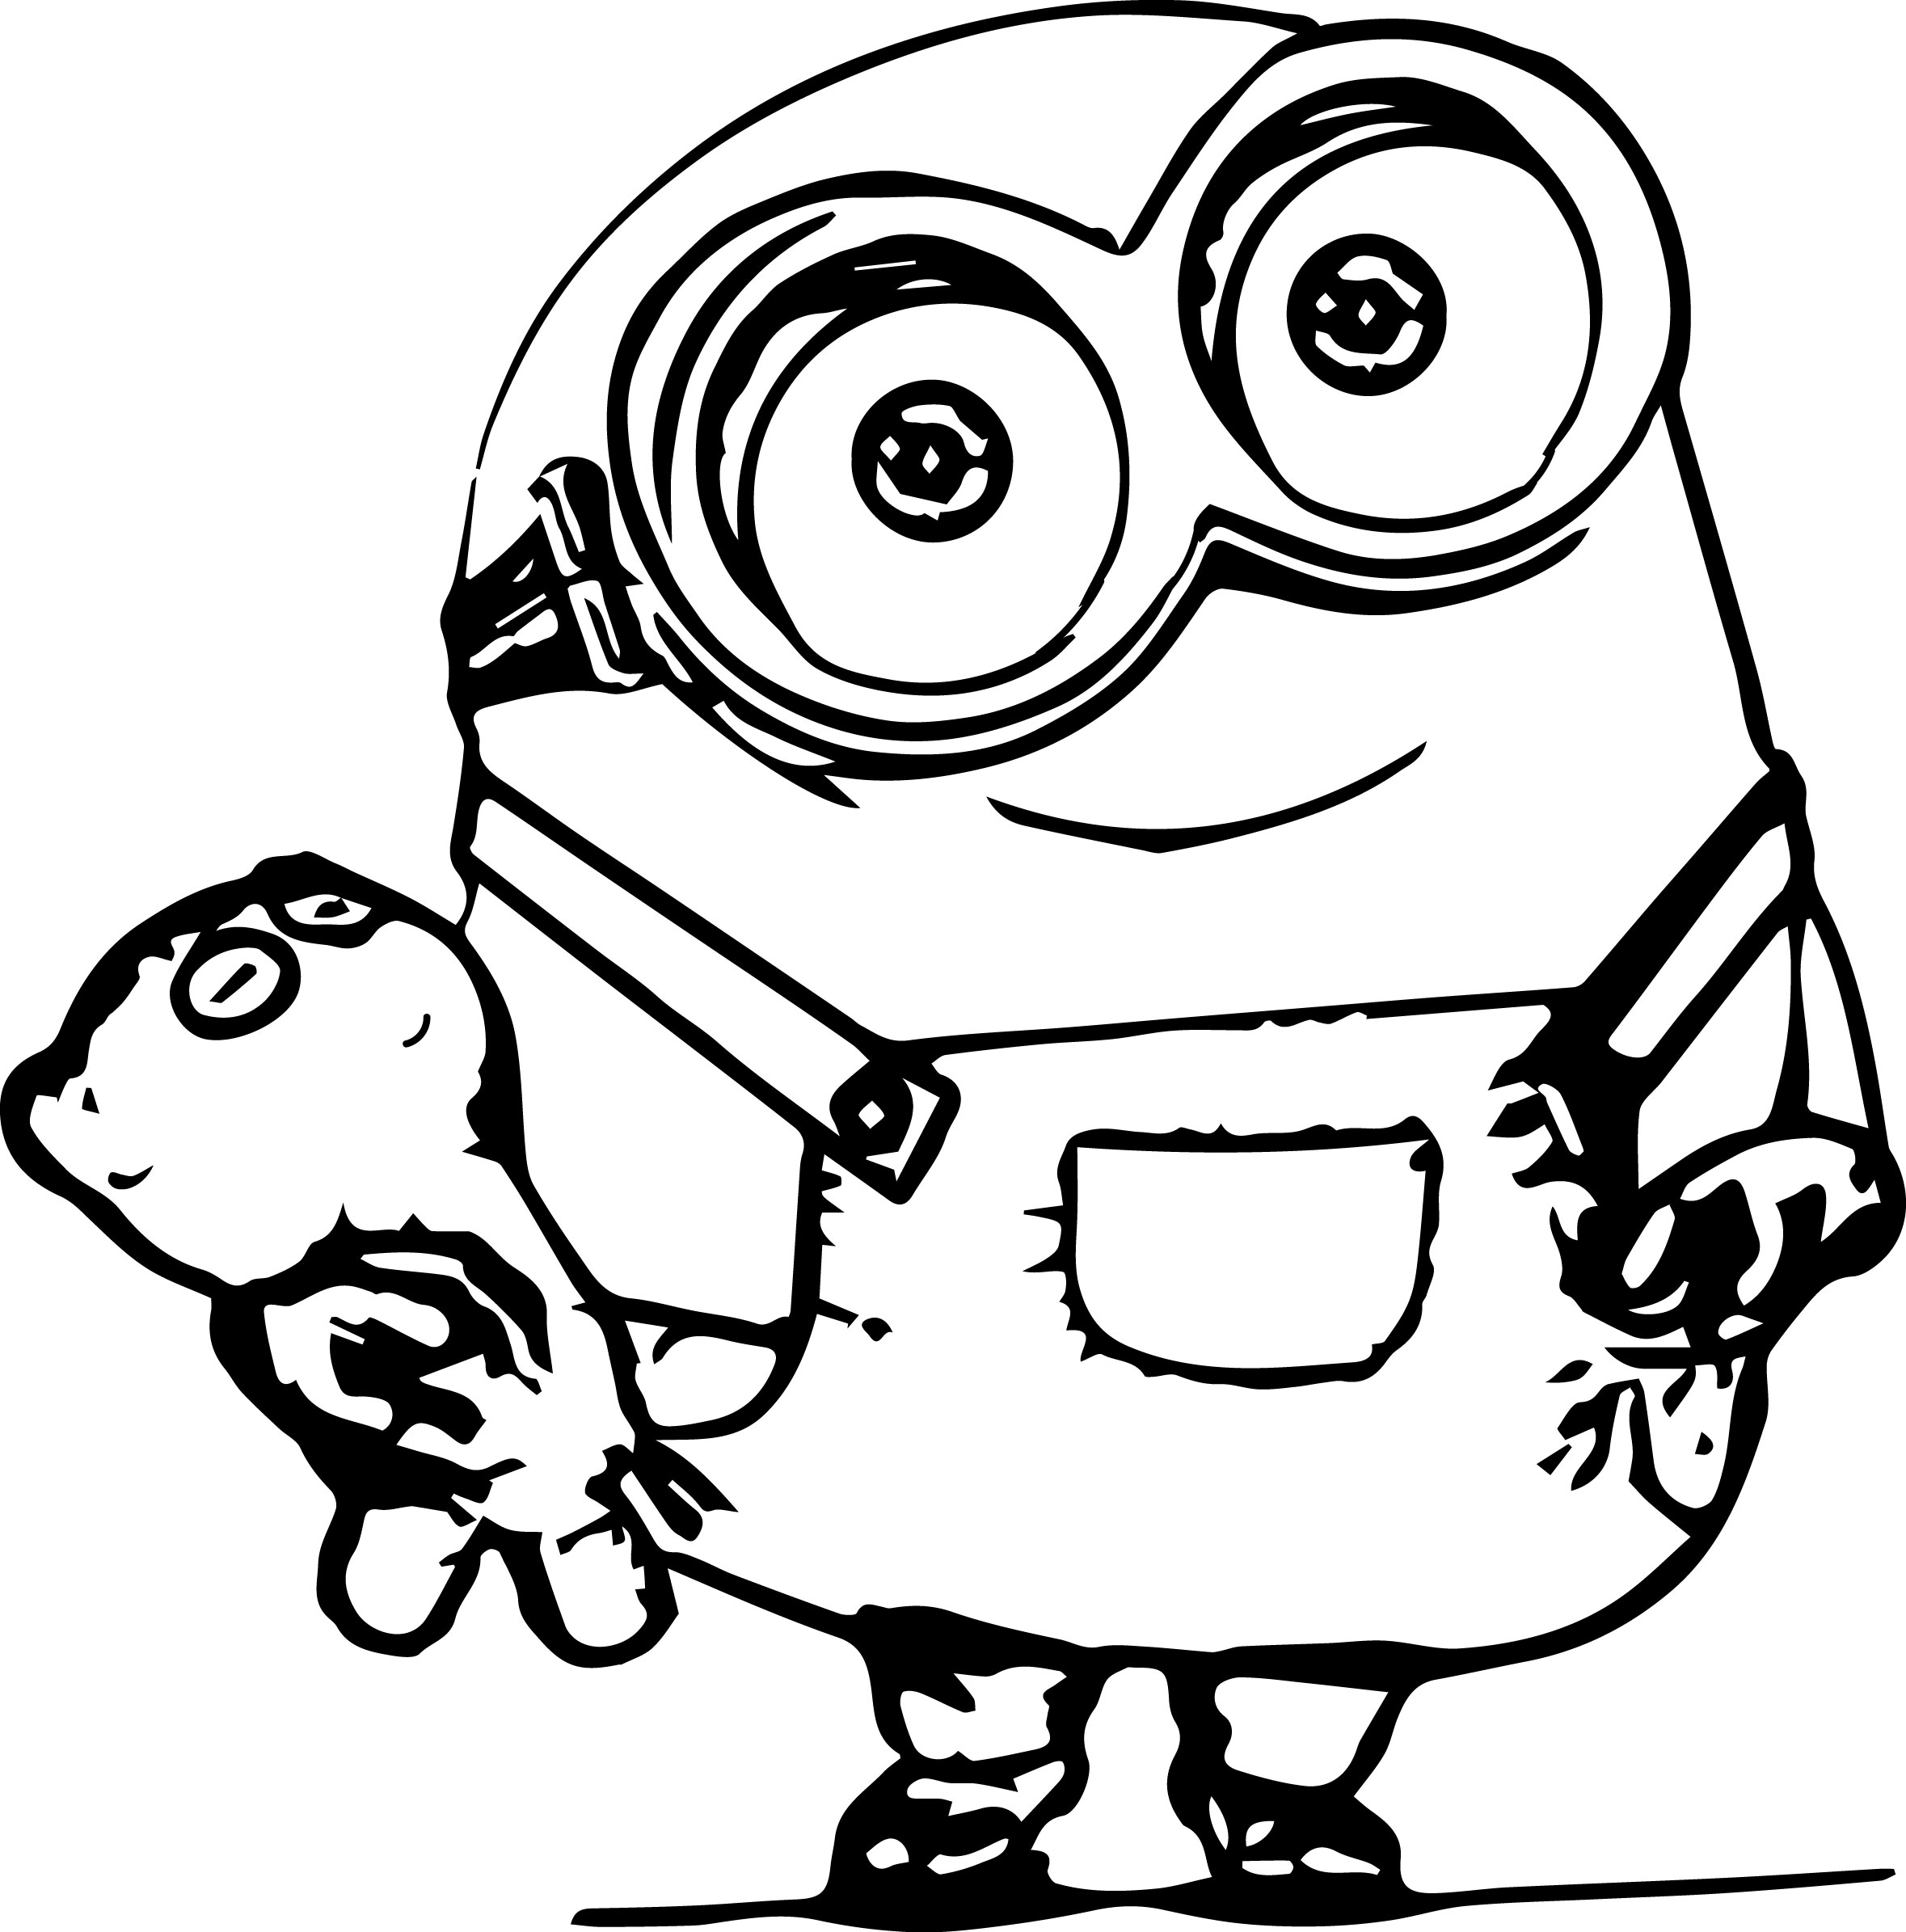 minion colouring page print download minion coloring pages for kids to have page colouring minion